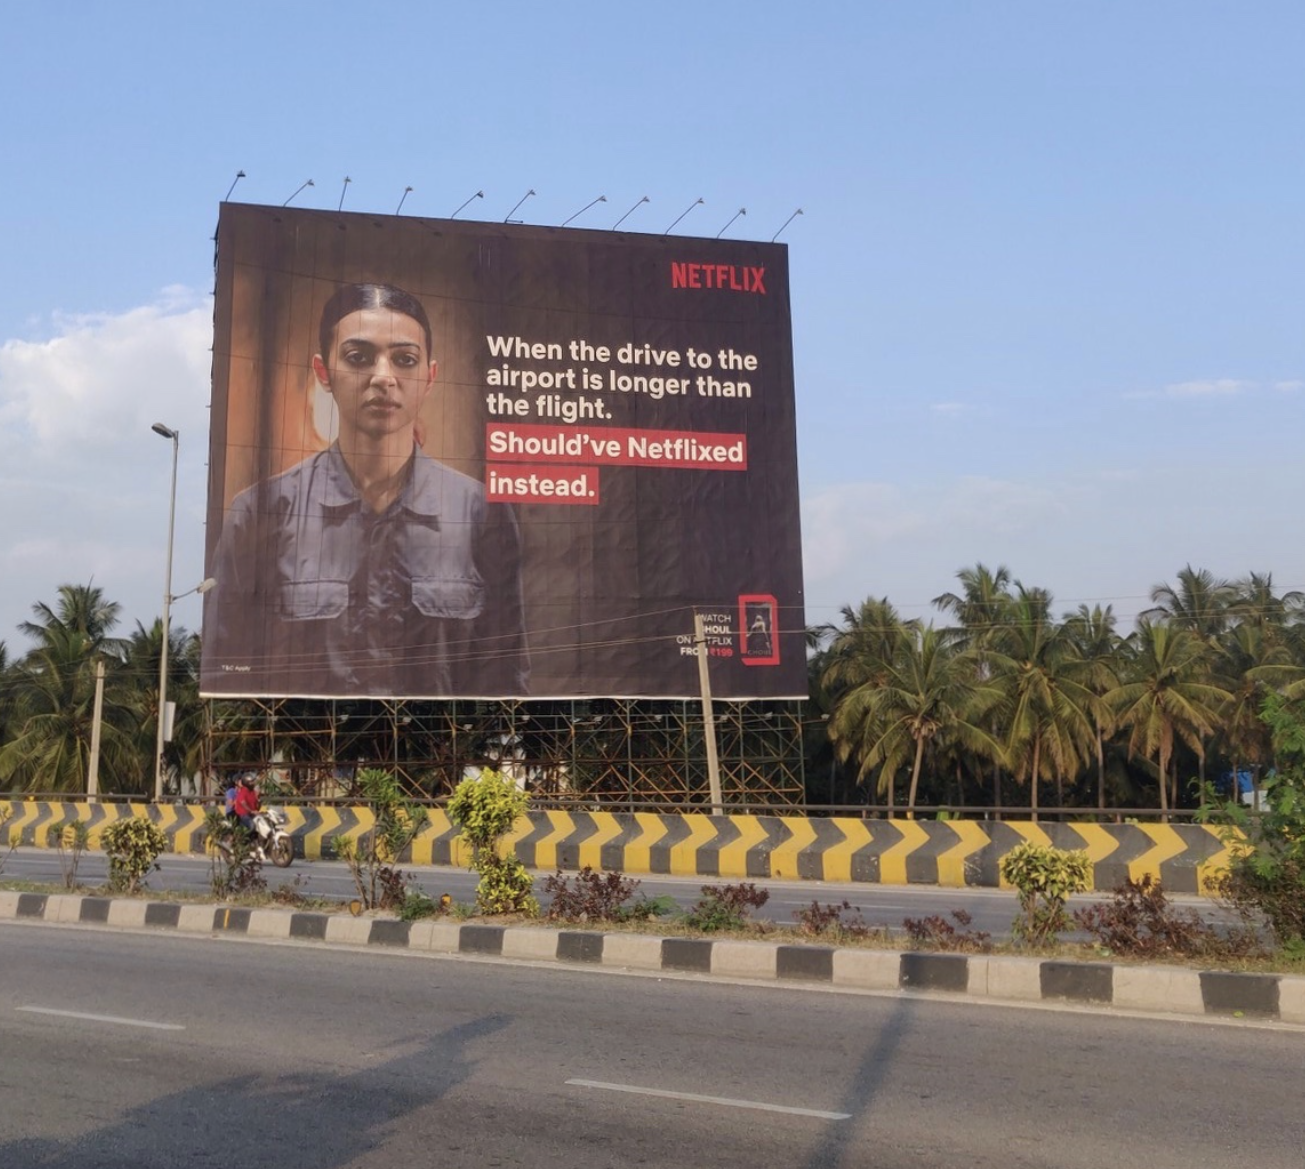 Signboard of Netflix ad on highway saying 'When the drive to the airport is longer than the flight'